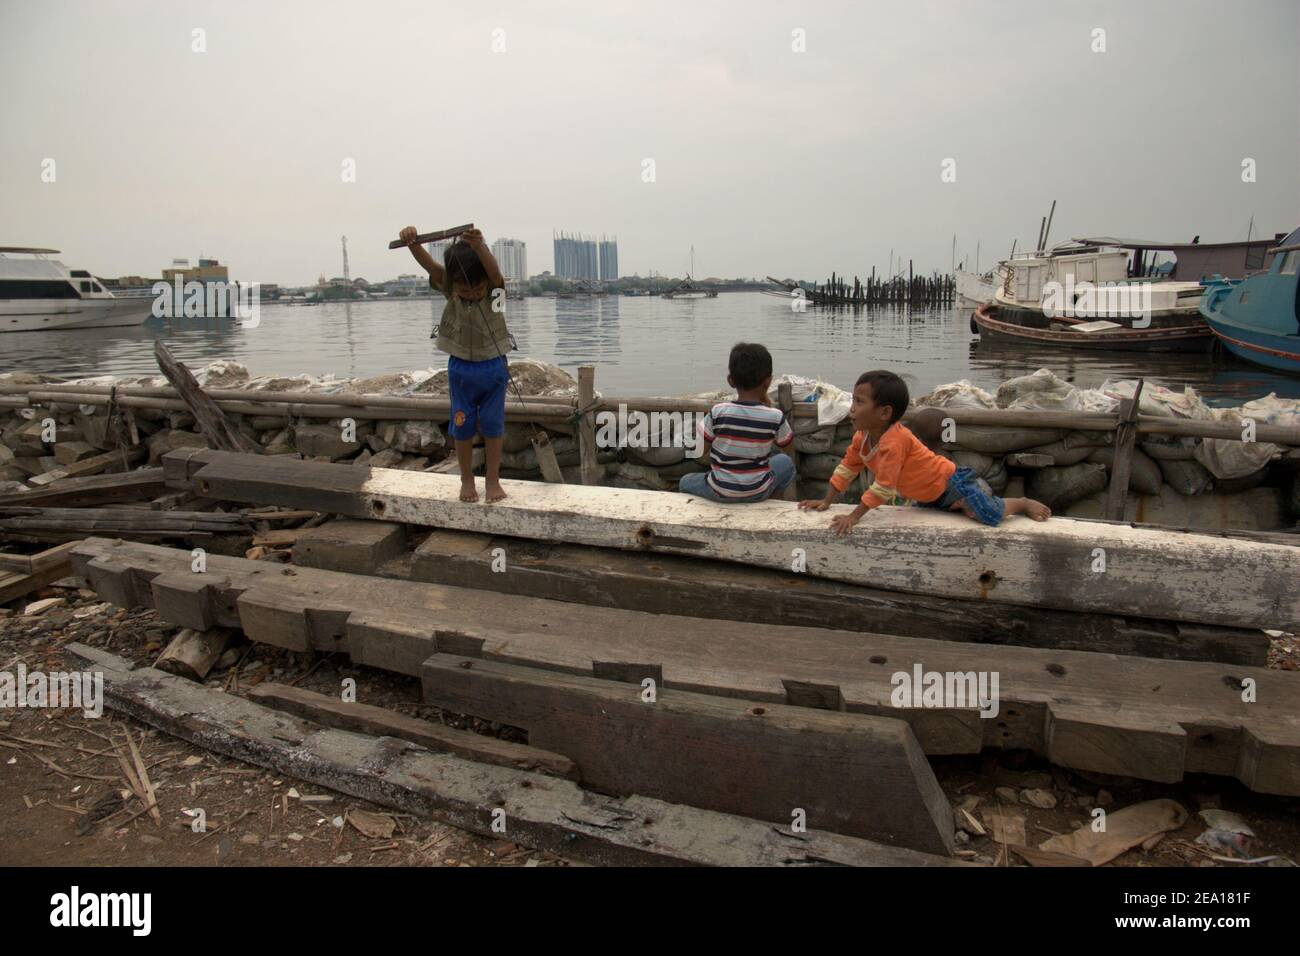 A group of children having a recreation behind the coastal protection structure protecting their neighbourhood from sea water floods in Muara Baru area, in the coastal area of Jakarta, Indonesia. Archival photo. Stock Photo